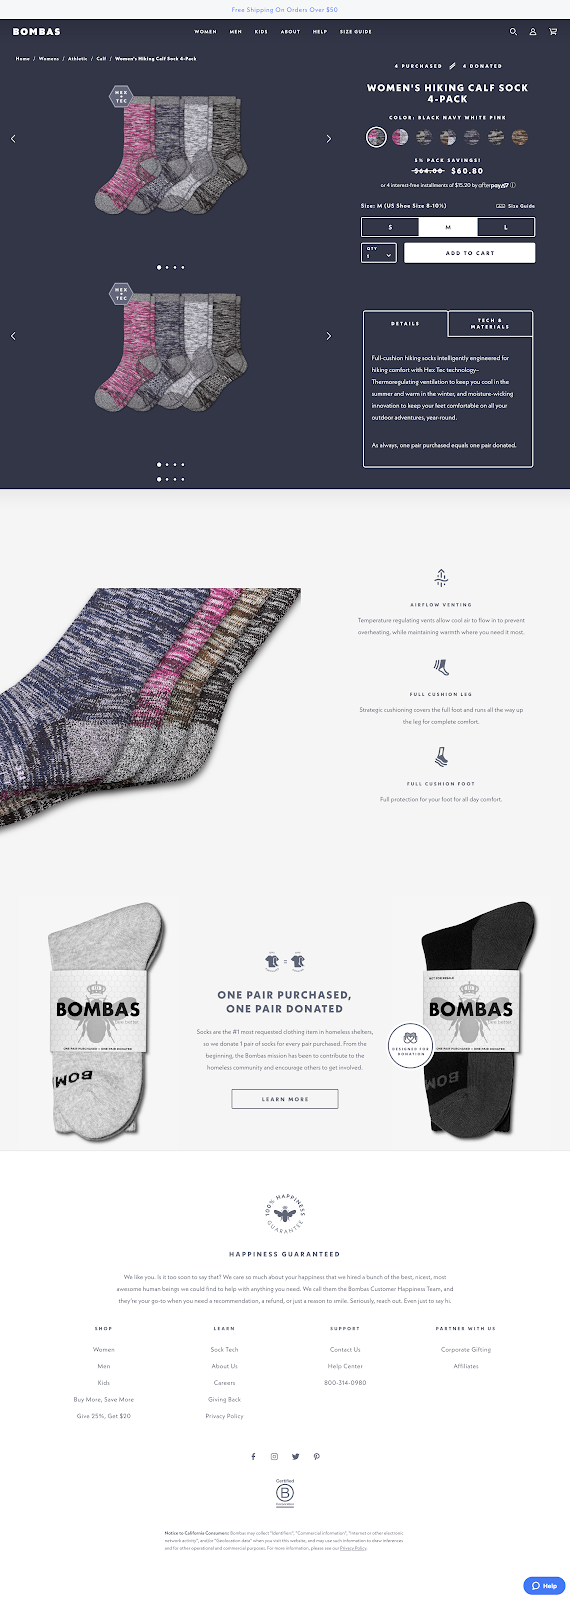 marketing funnels explained bombas product page